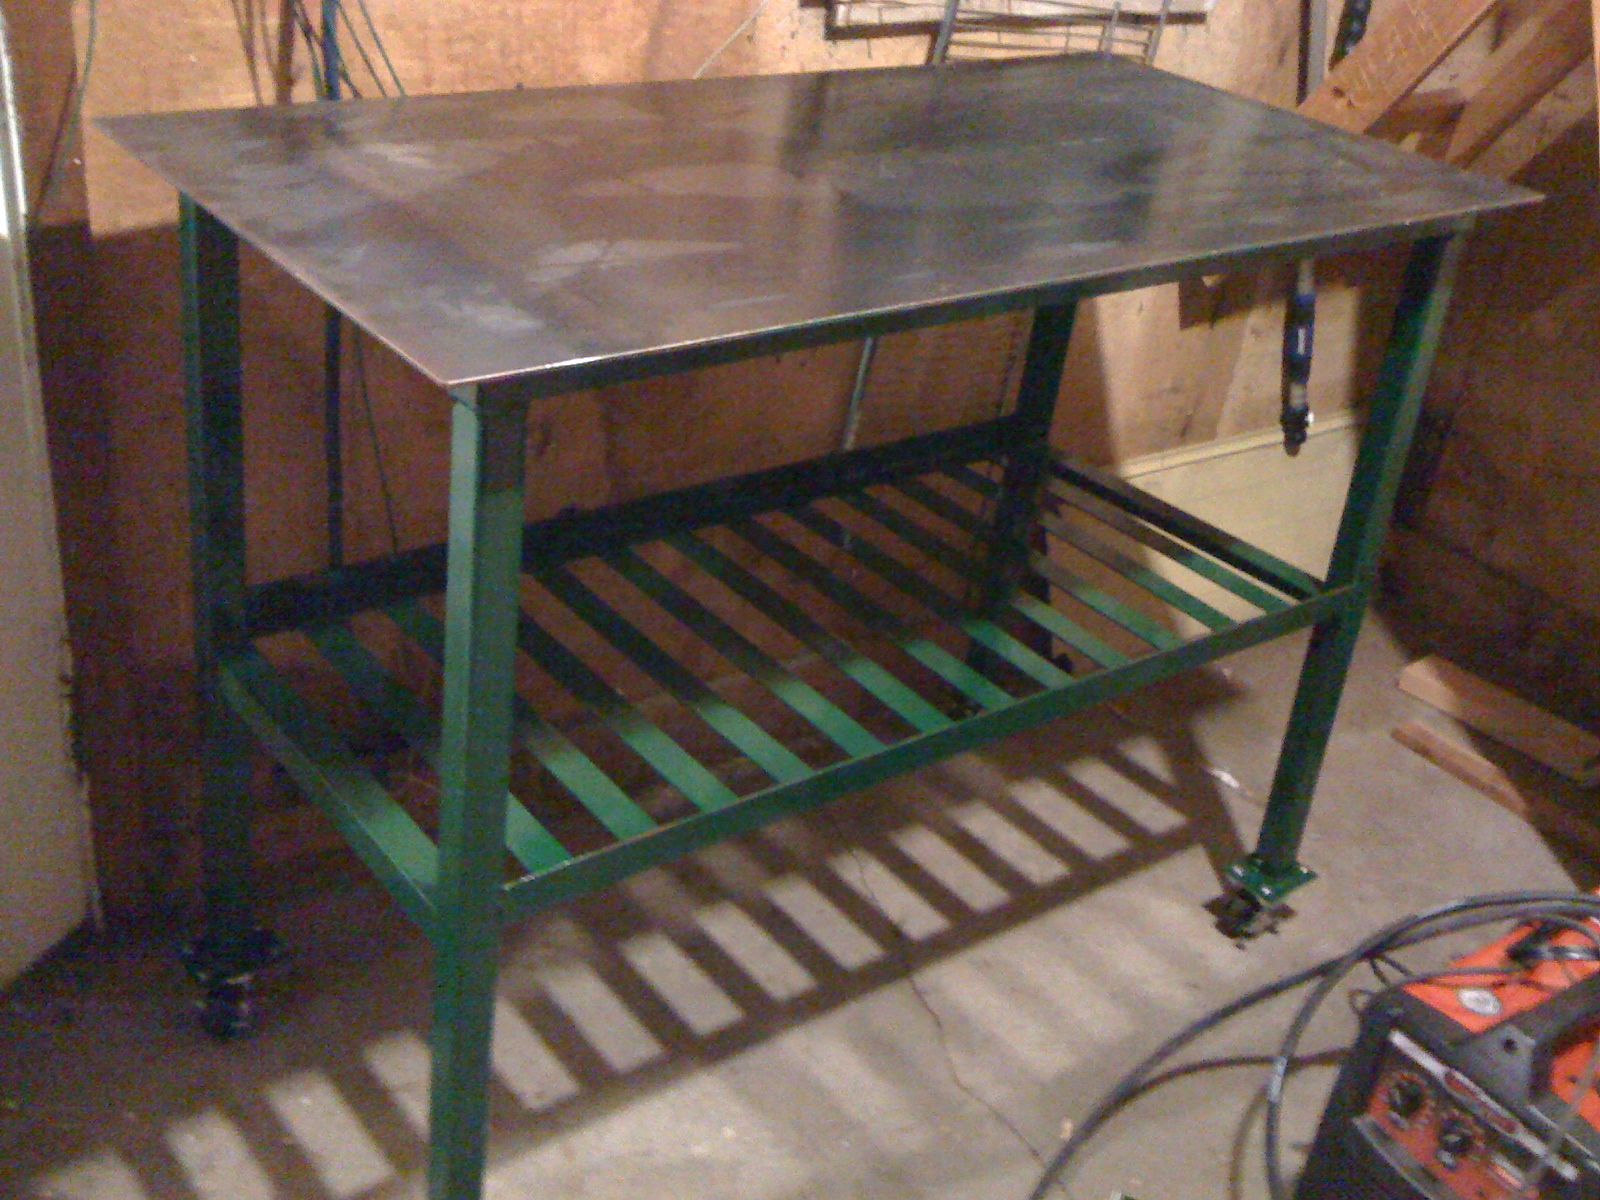 Enjoyable Small Project For A Mig Welder Is There Room In The Garage Download Free Architecture Designs Embacsunscenecom